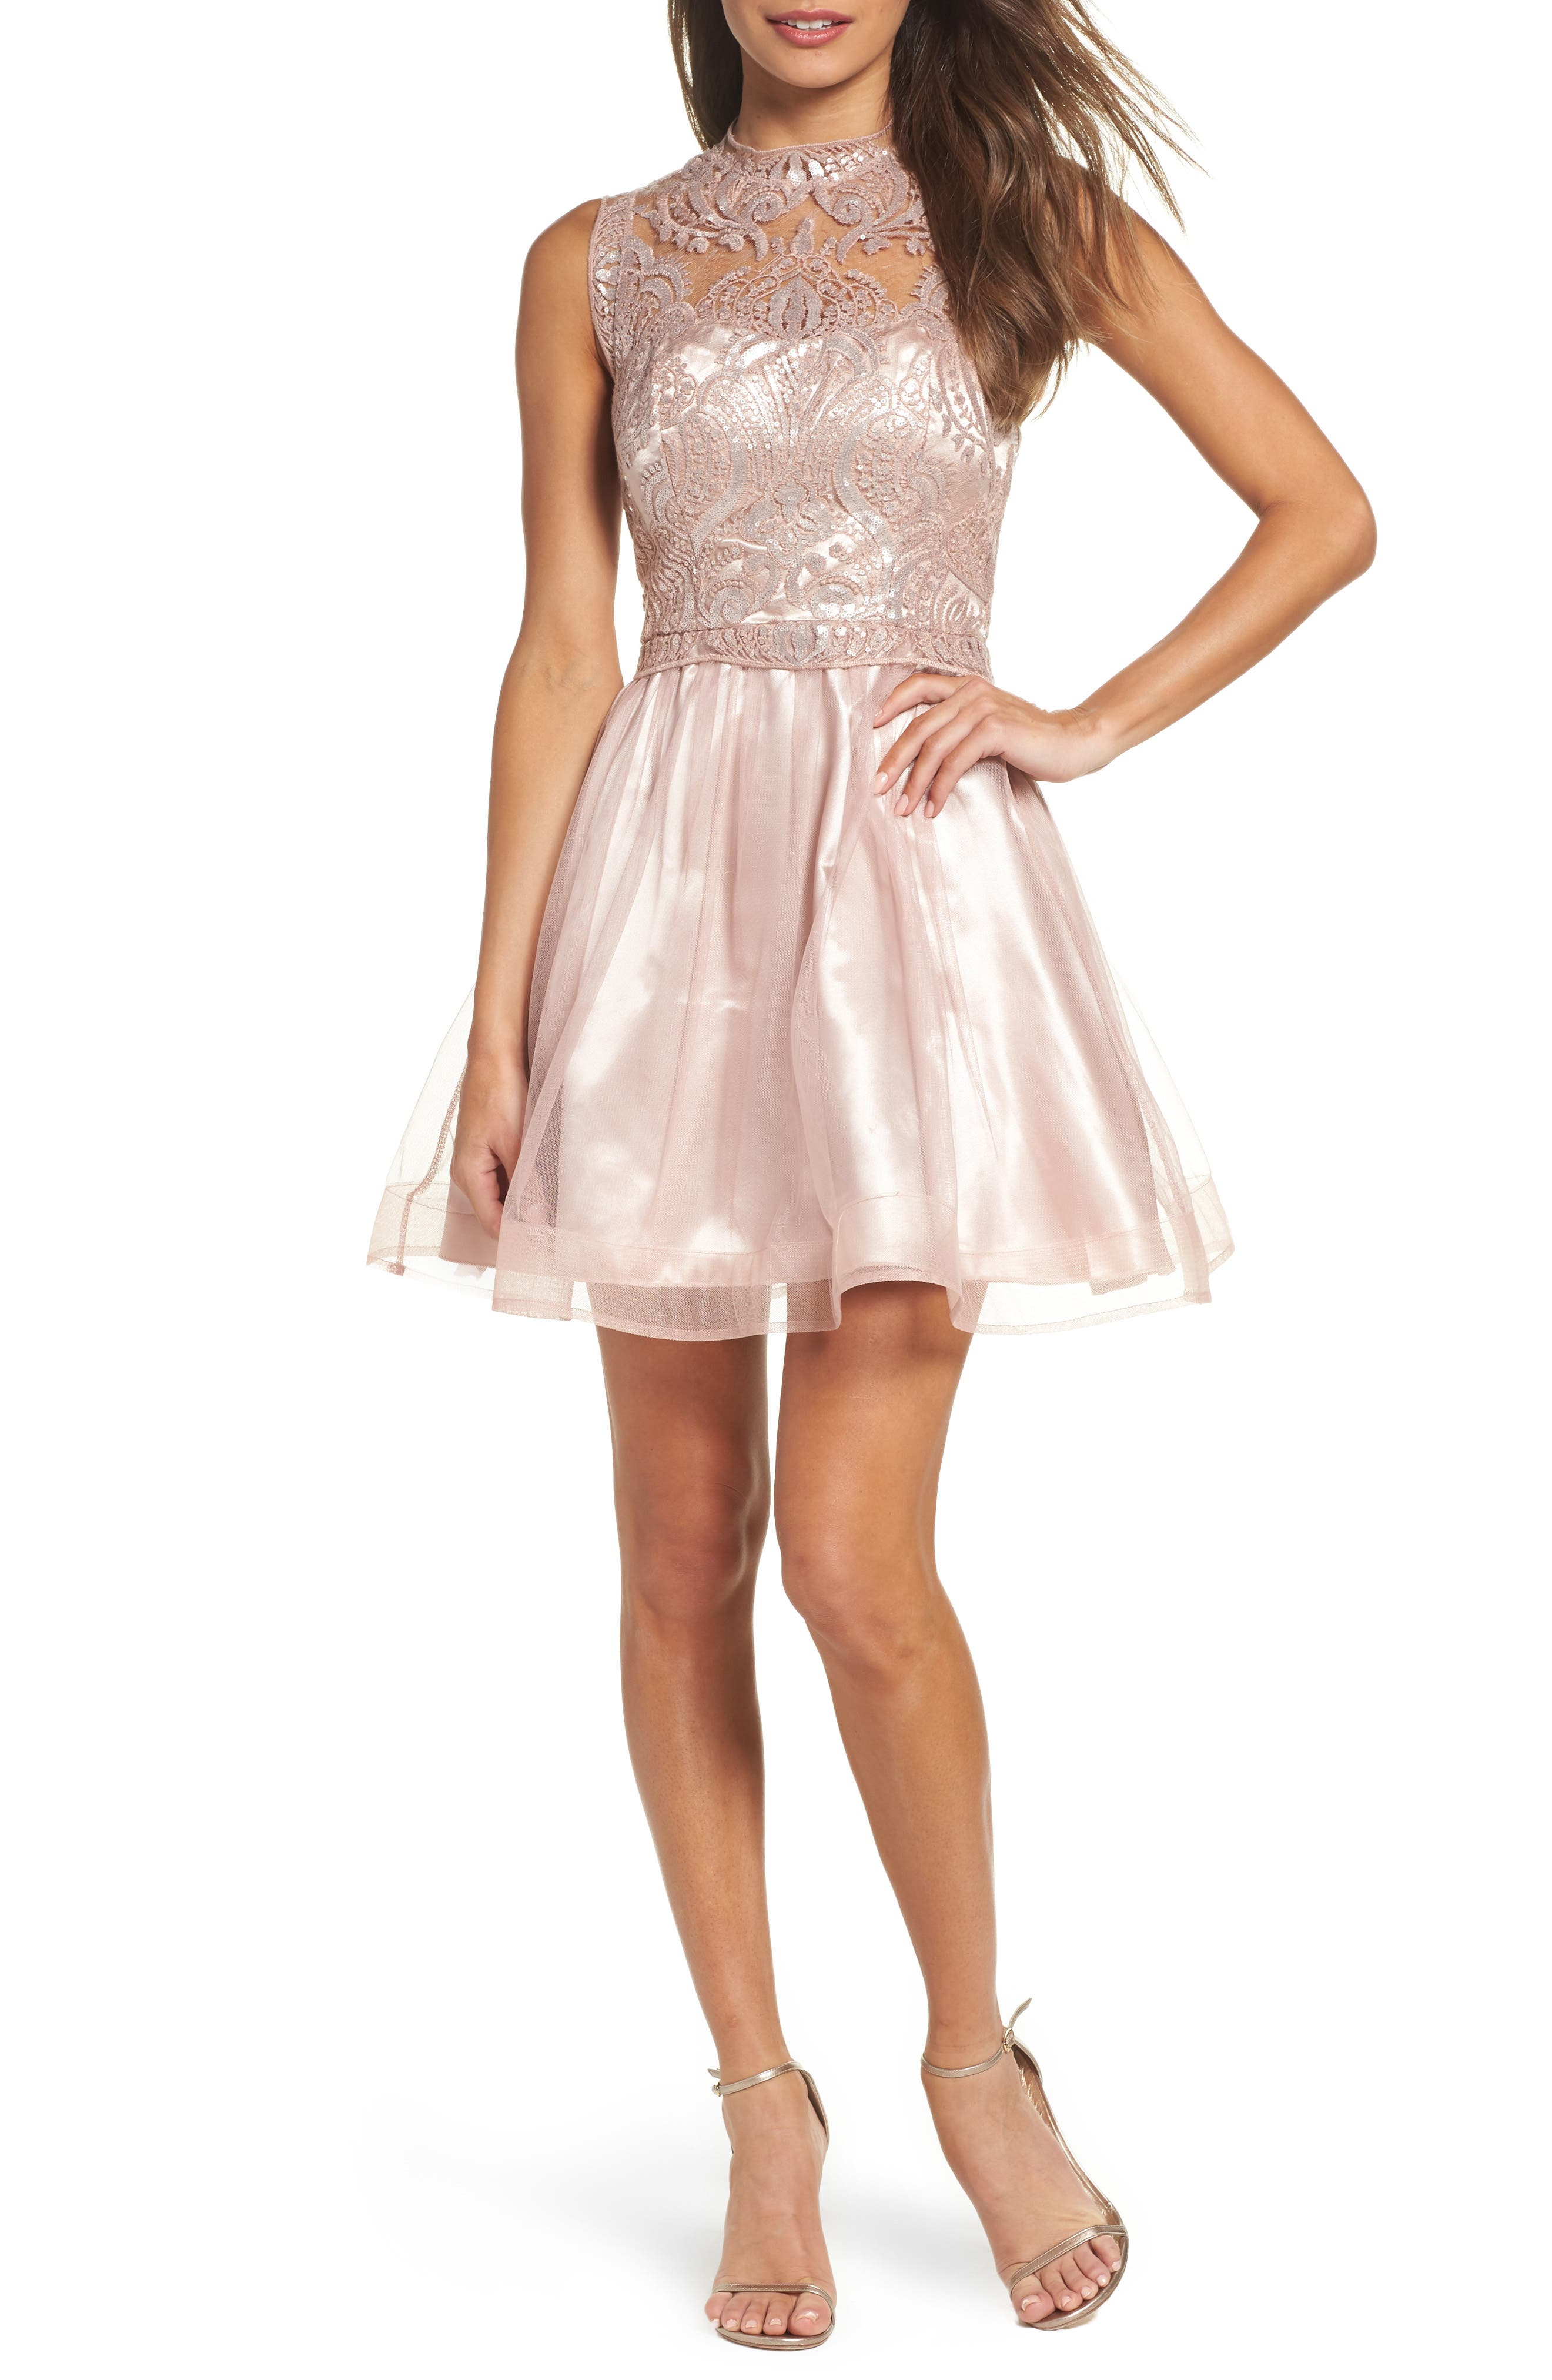 Sequin Hearts Lace Illusion Fit & Flare Dress